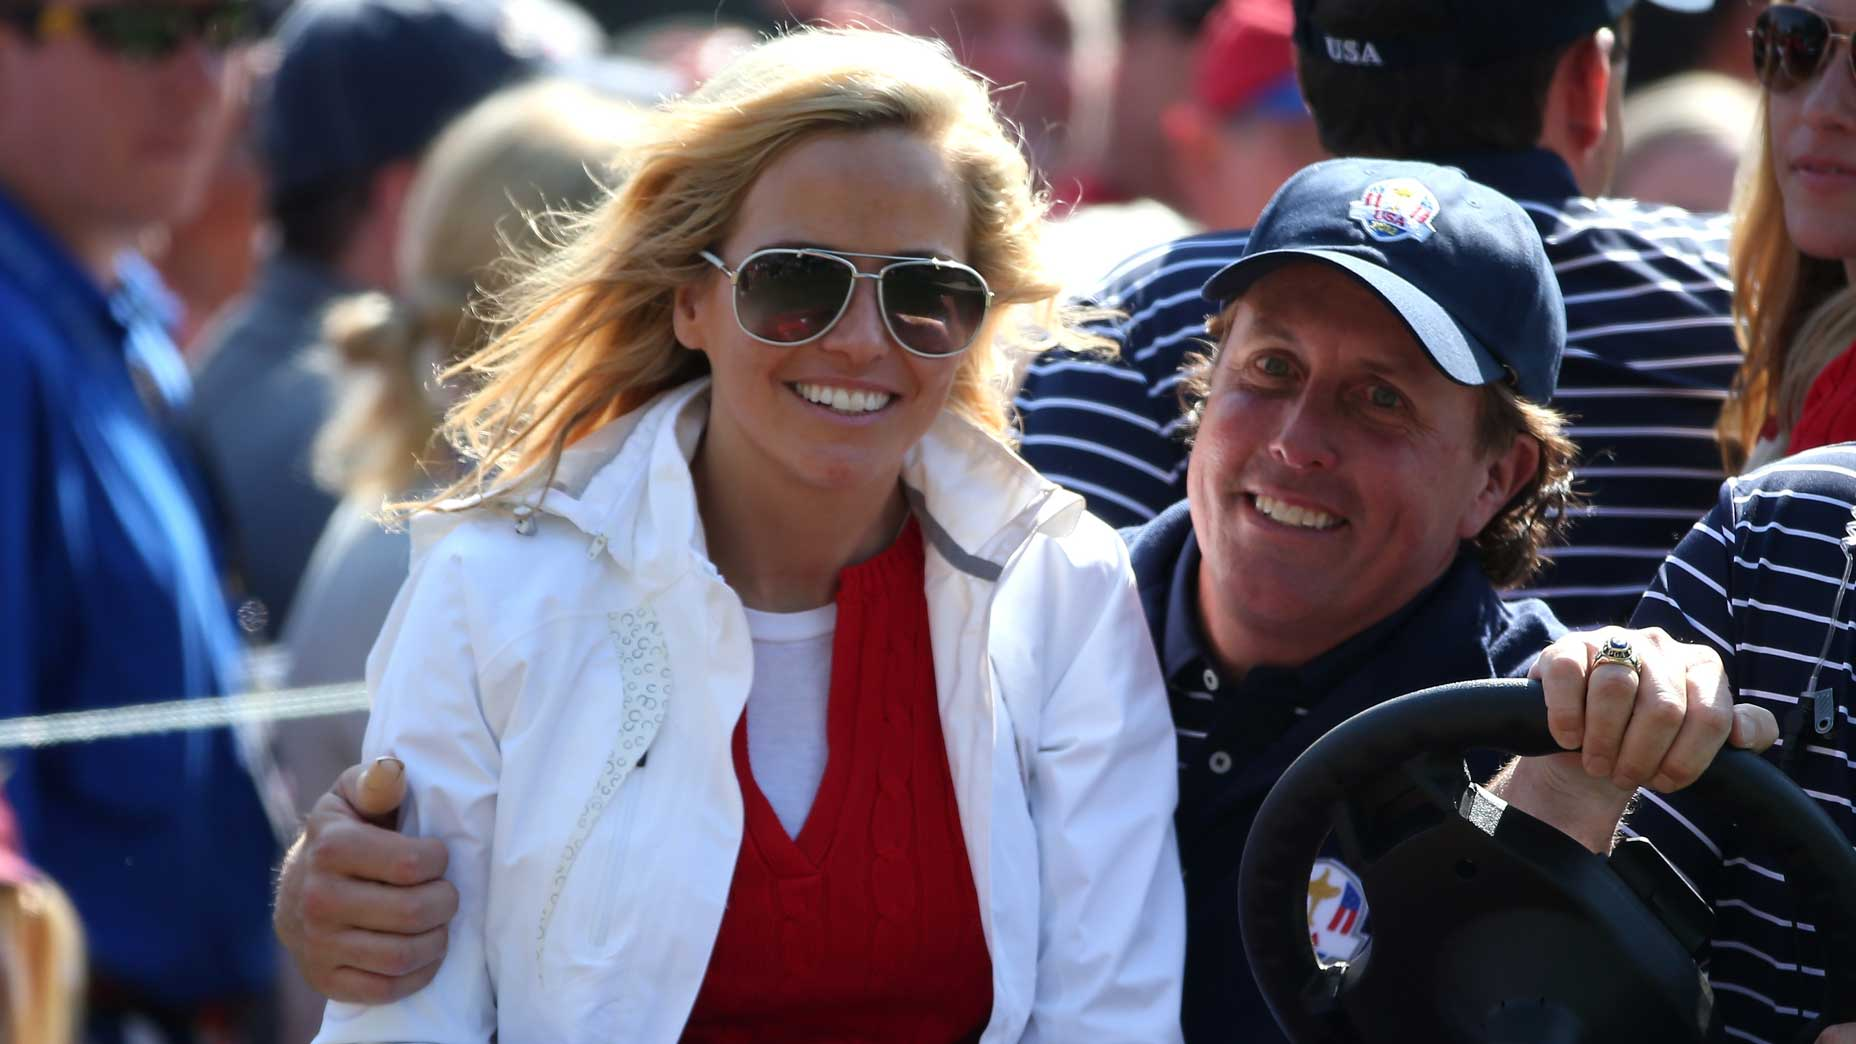 Amy and Phil Mickelson at the 2012 Ryder Cup.